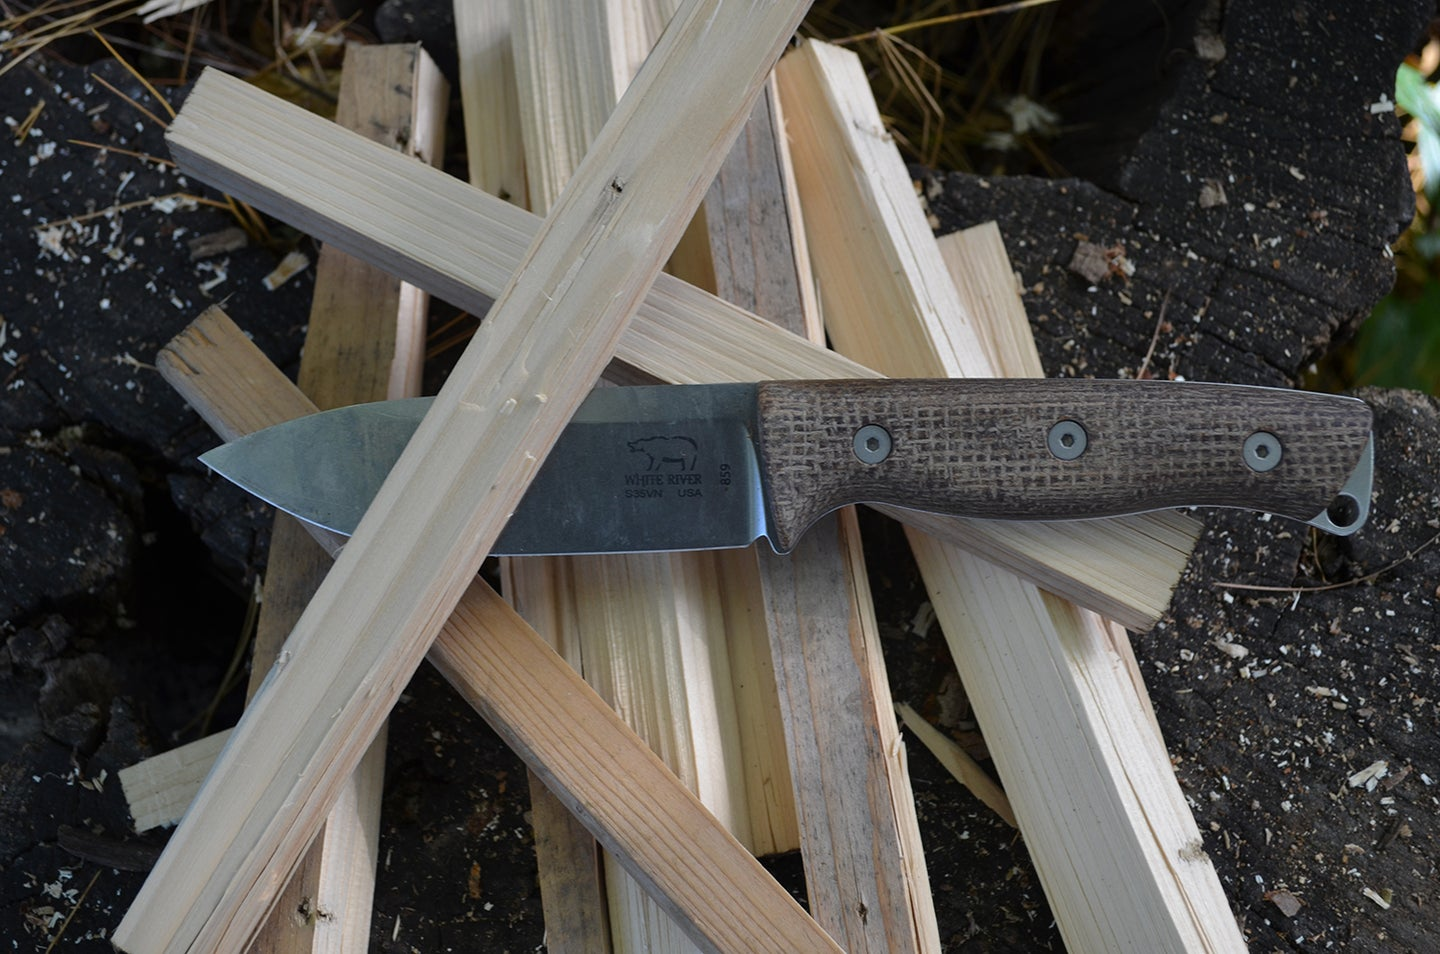 A bushcraft knife in a pile of wood pieces.